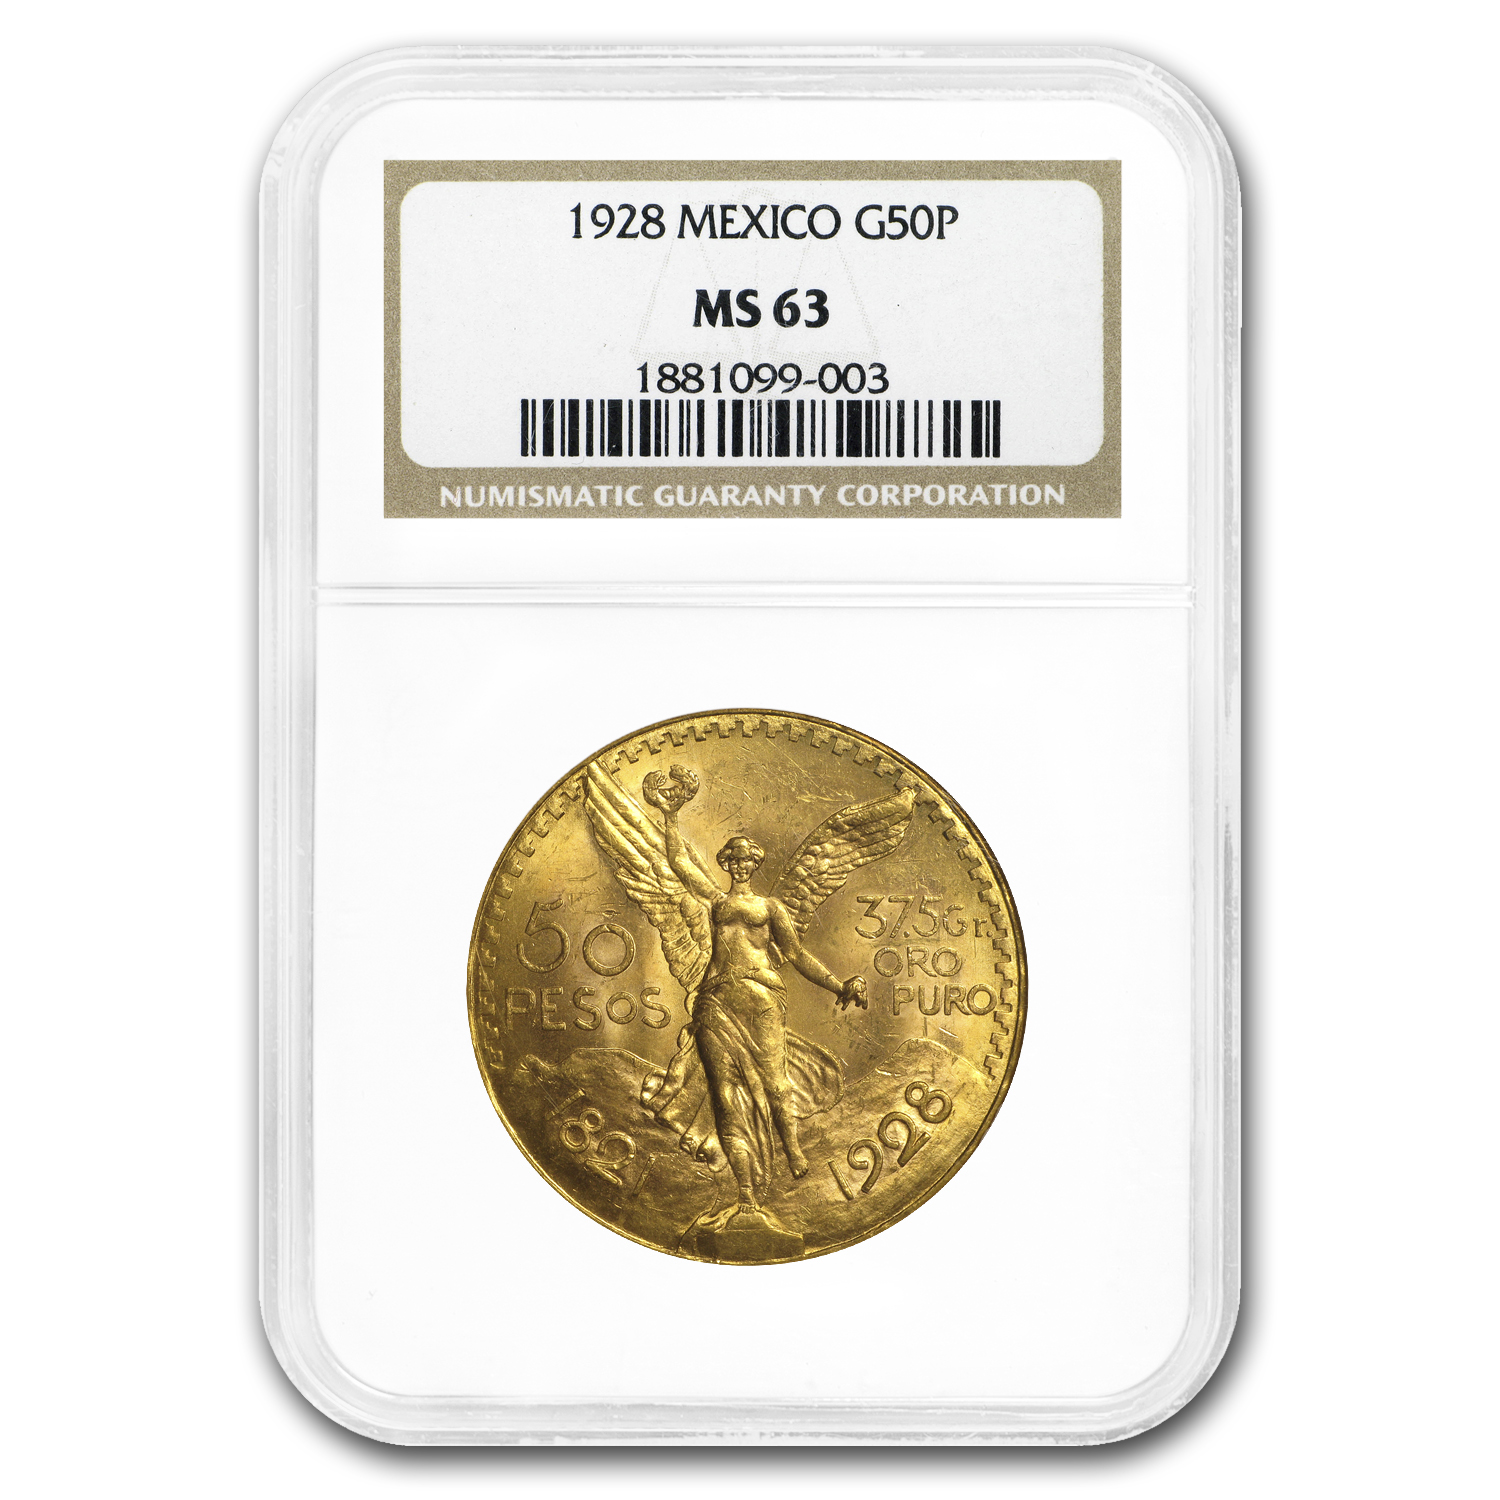 1928 Mexico Gold 50 Pesos MS-63 NGC